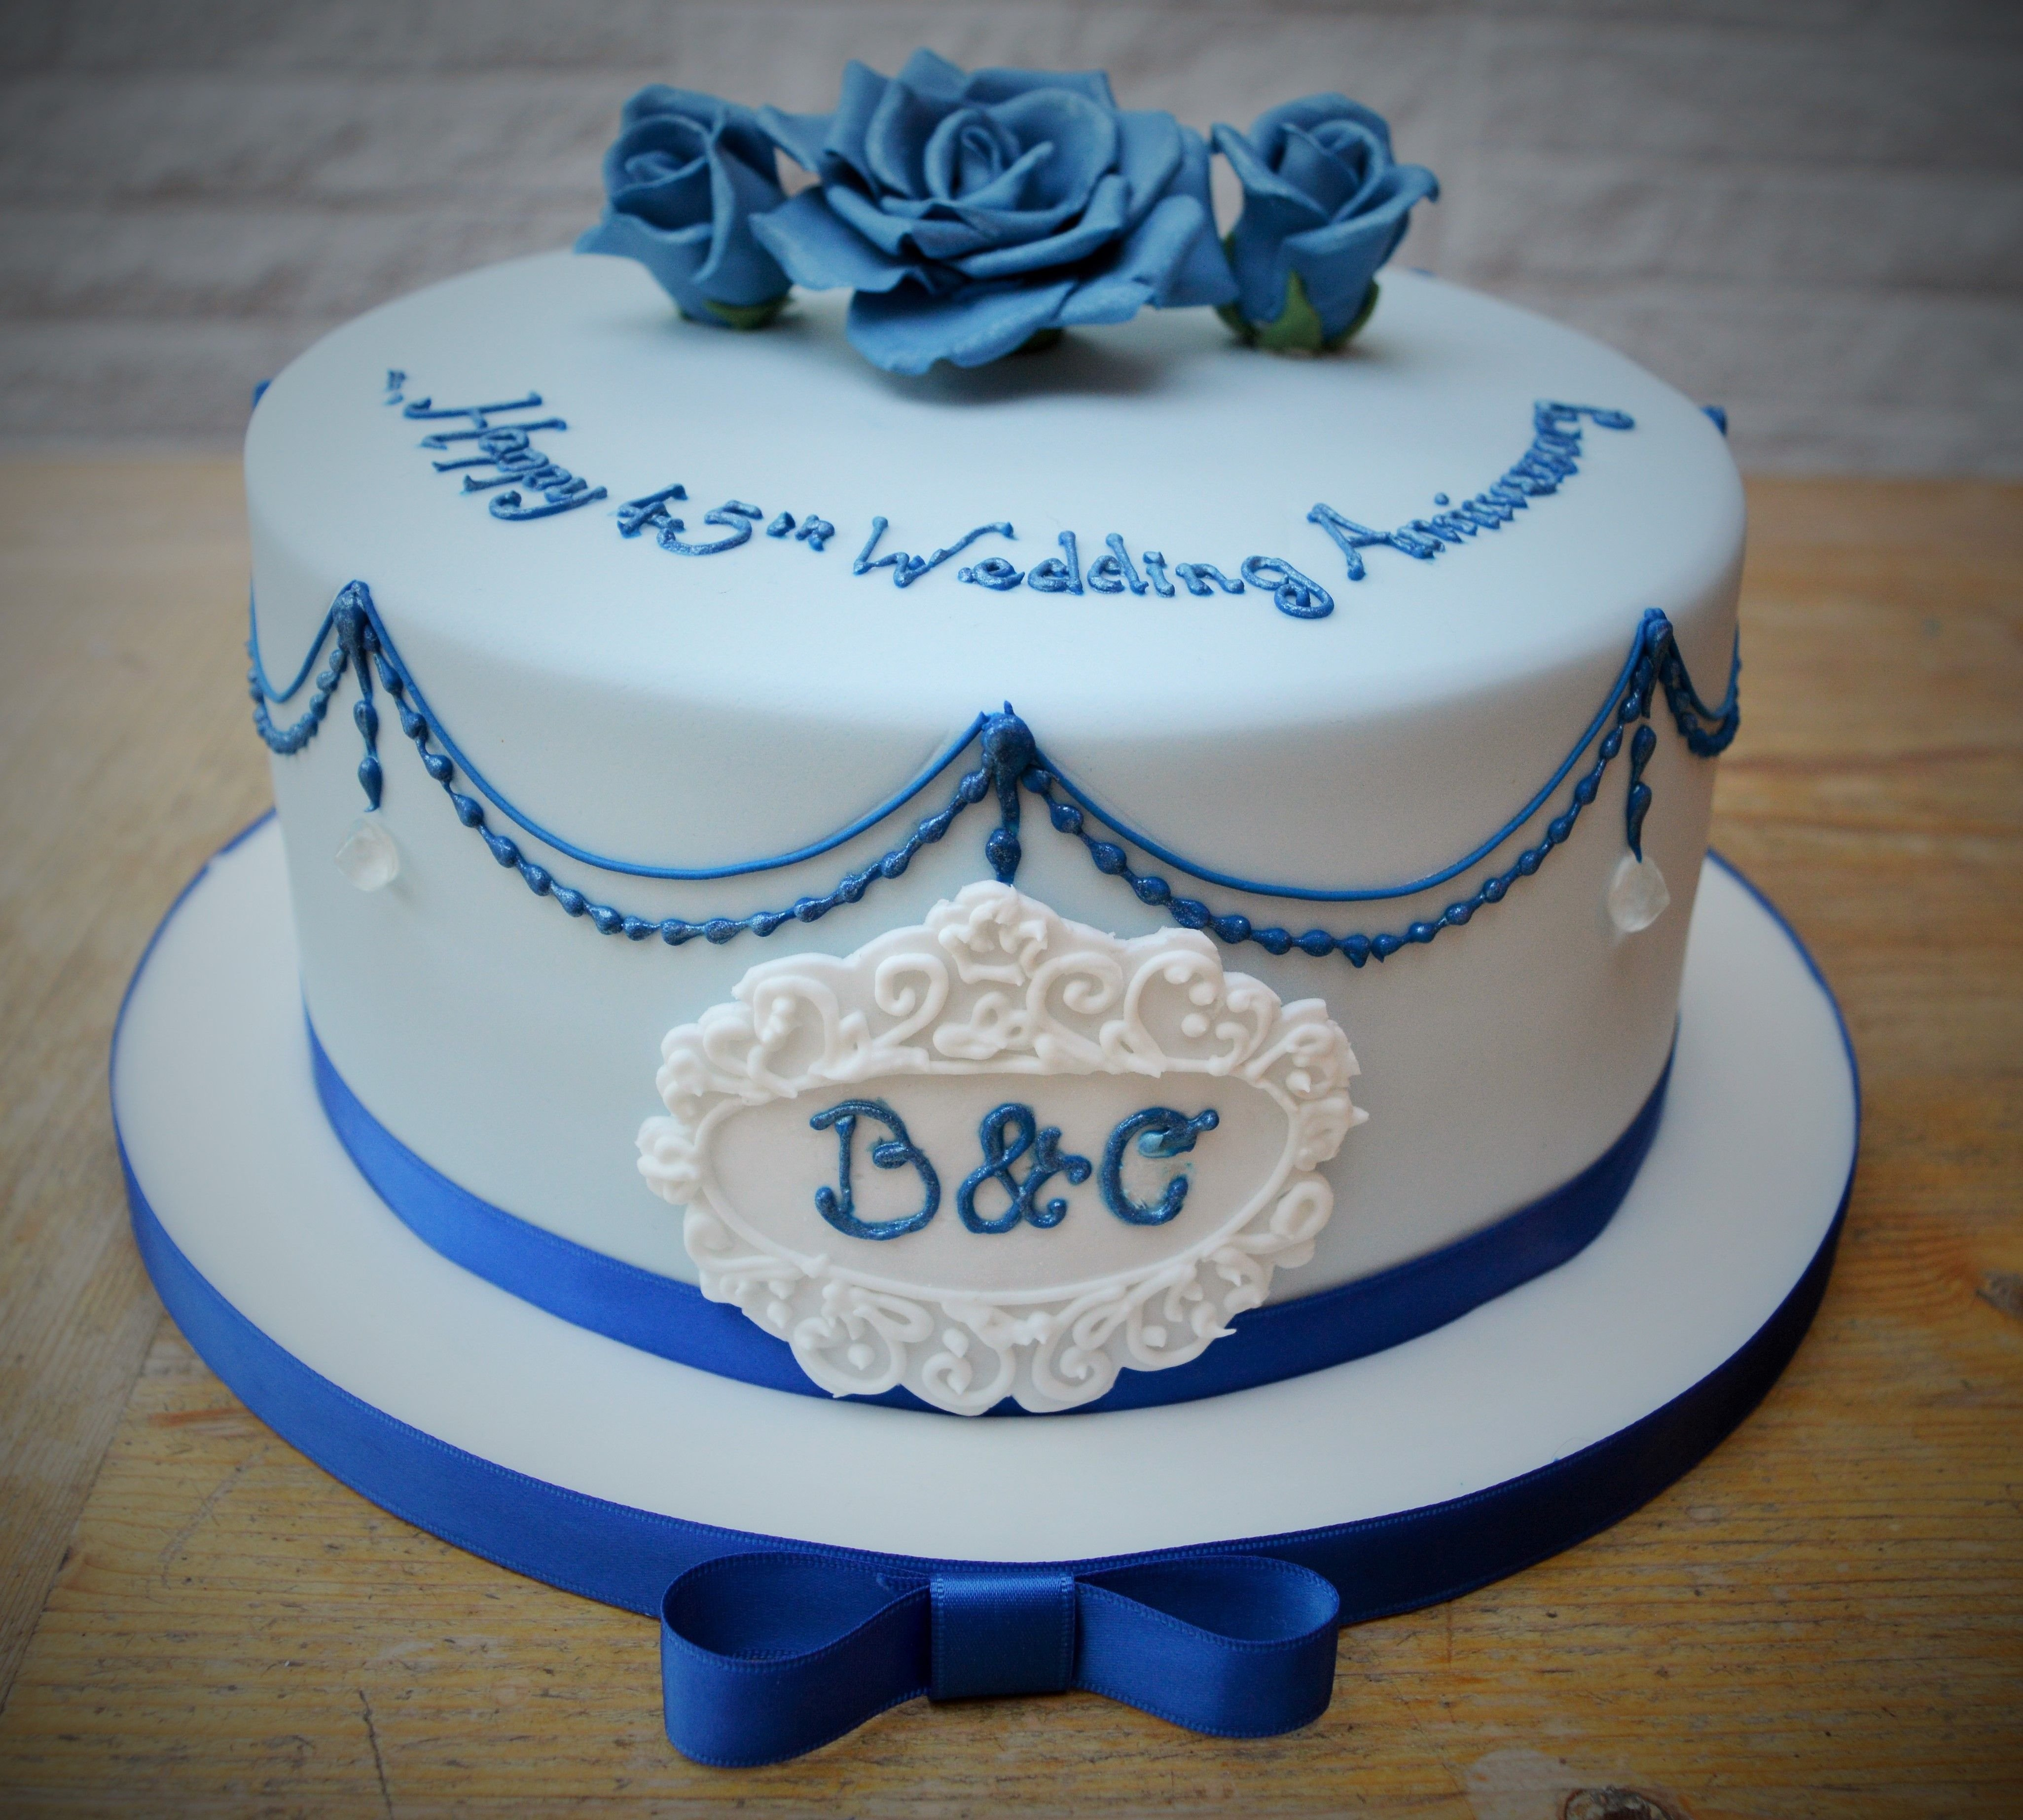 10 Famous 45Th Wedding Anniversary Party Ideas a gorgeously ornate 45th wedding anniversary cake sapphire ds 2021